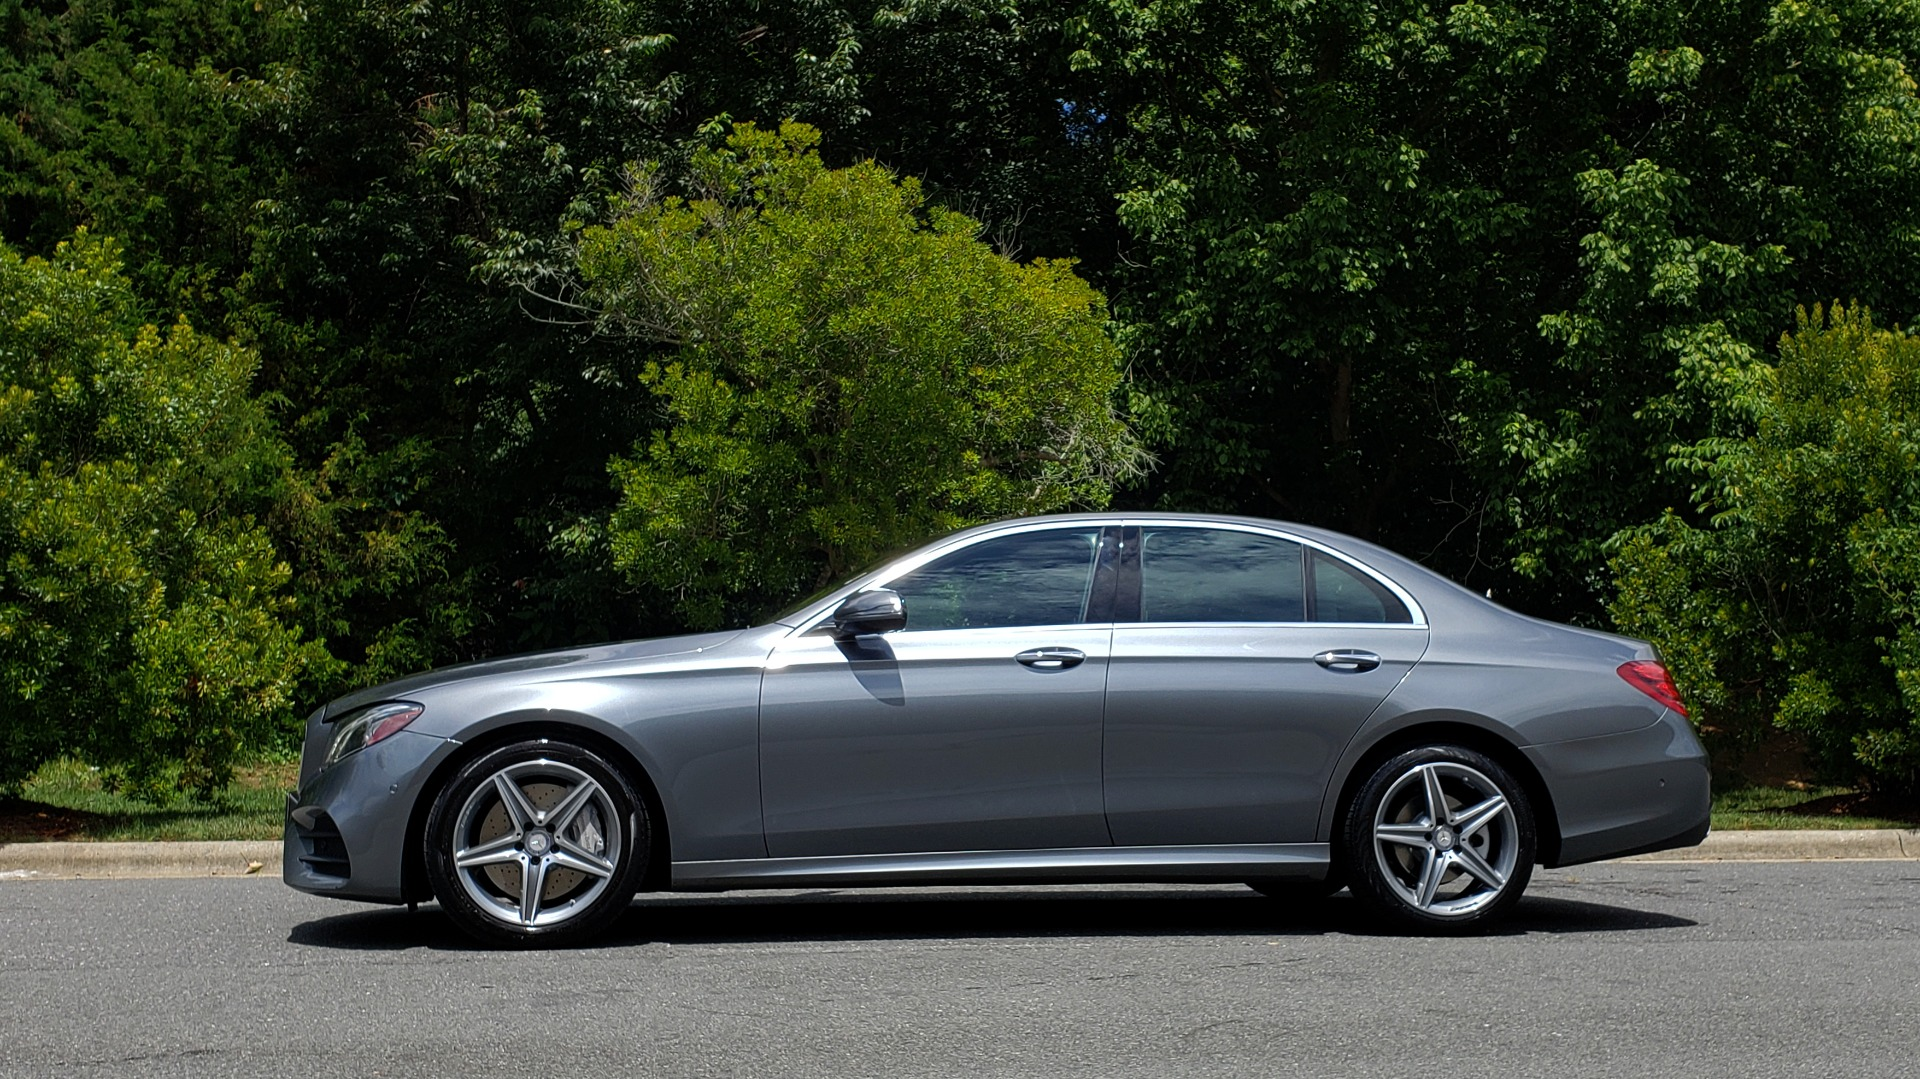 Used 2017 Mercedes-Benz E-Class E 300 4MATIC PREMIUM / SPORT / NAV / BURMESTER / HTD STS / REARVIEW for sale $30,495 at Formula Imports in Charlotte NC 28227 2